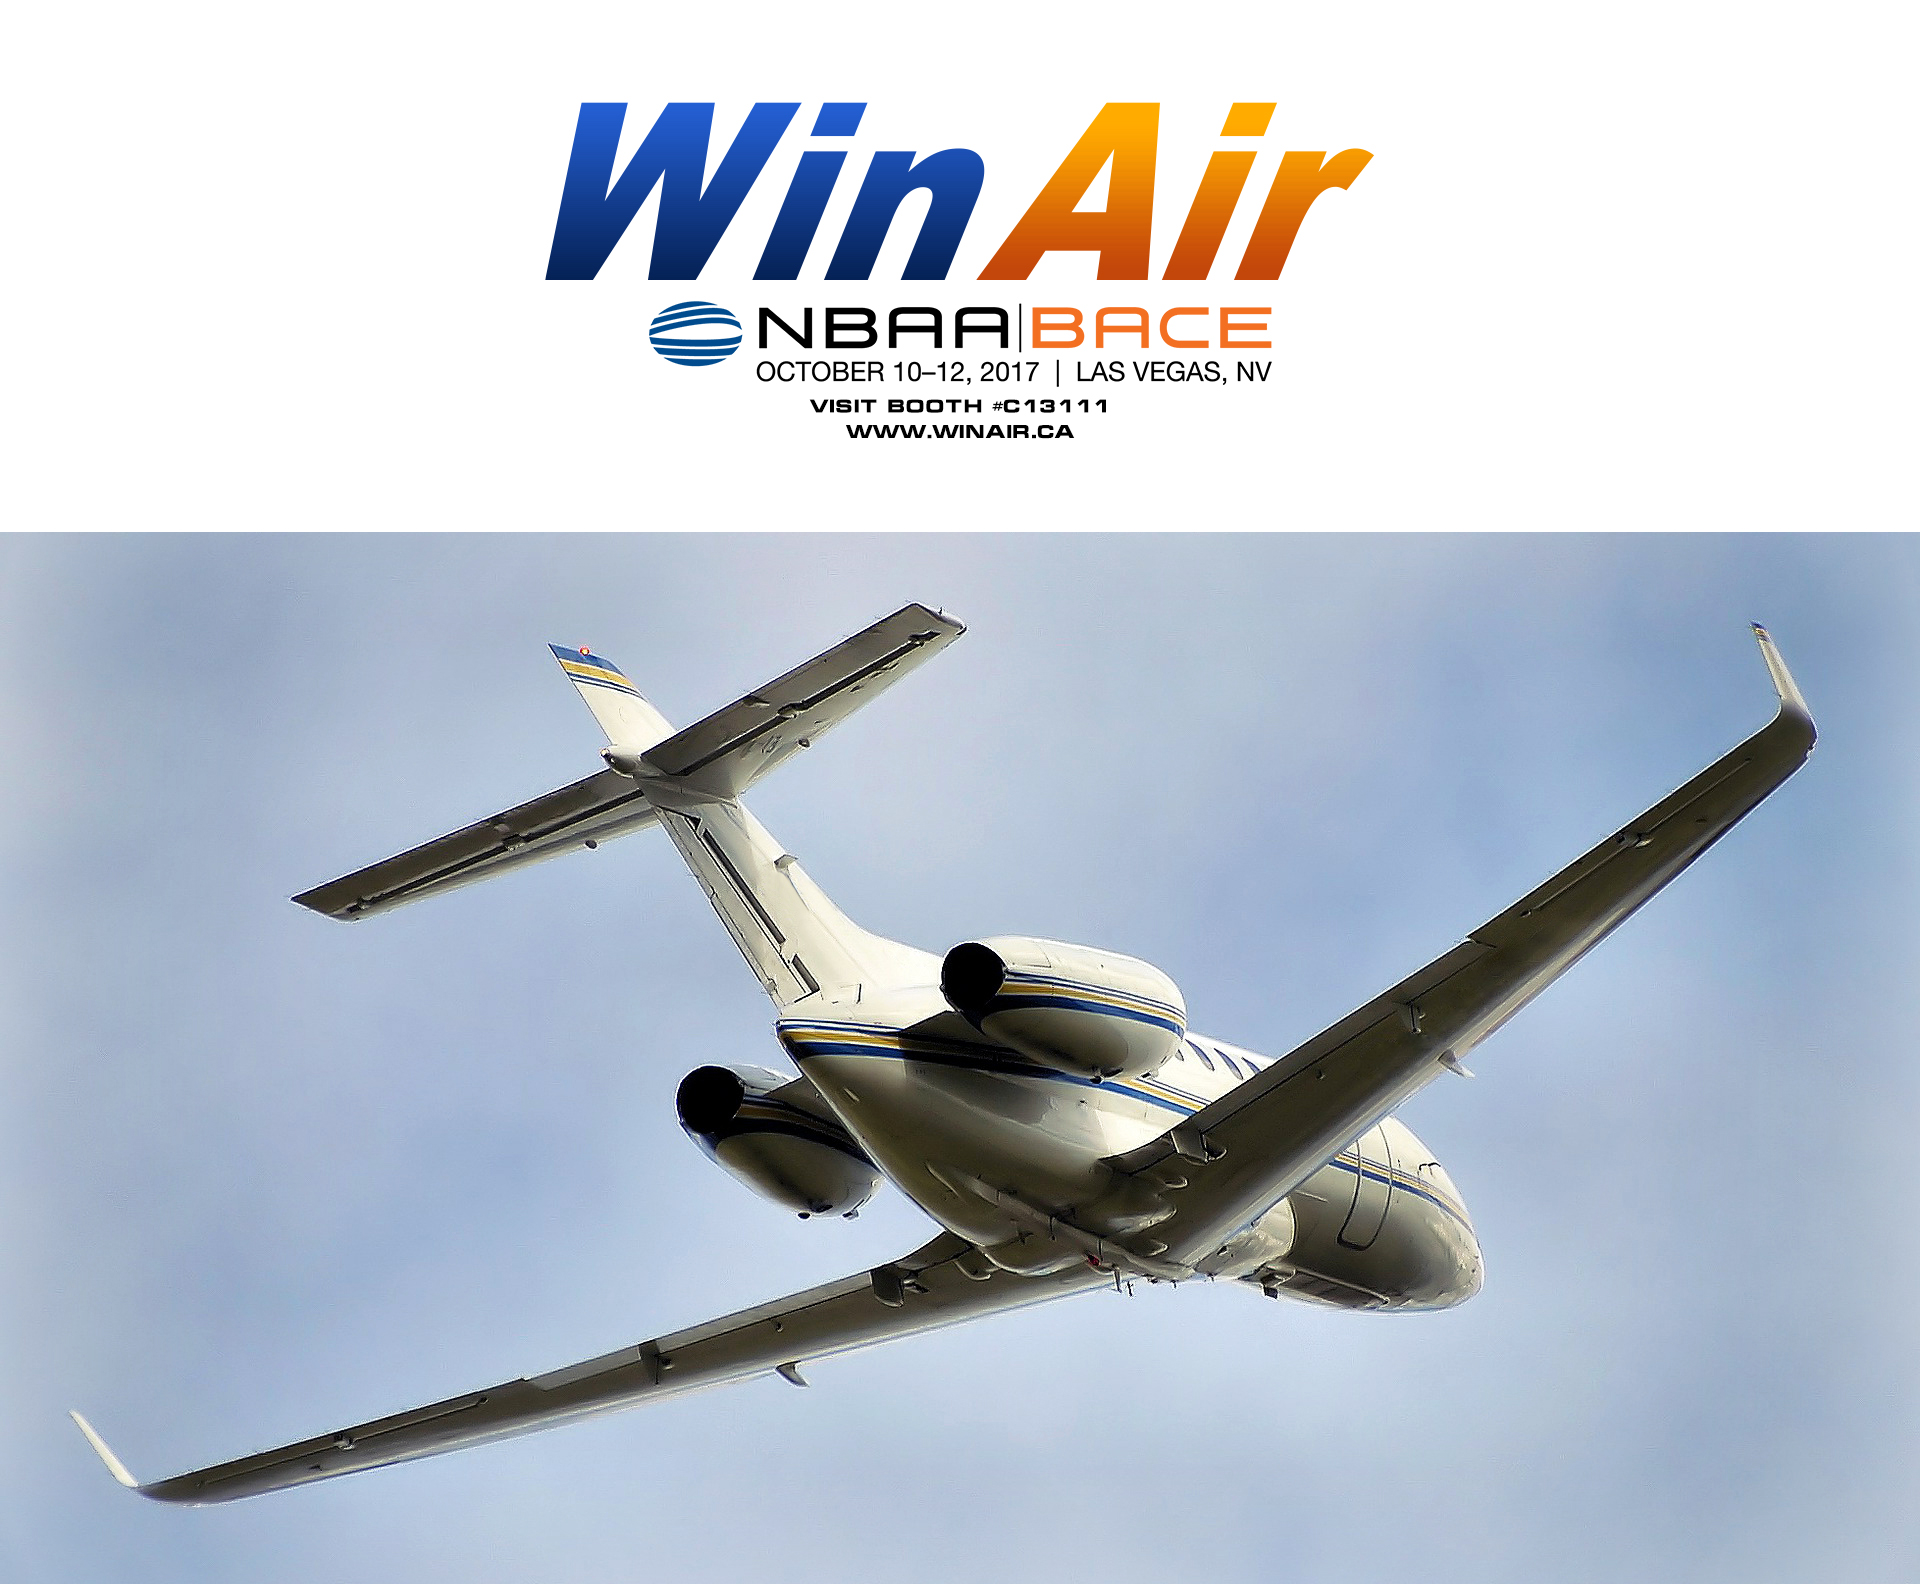 WinAir NBAA 2017 Booth C13111 promotional image